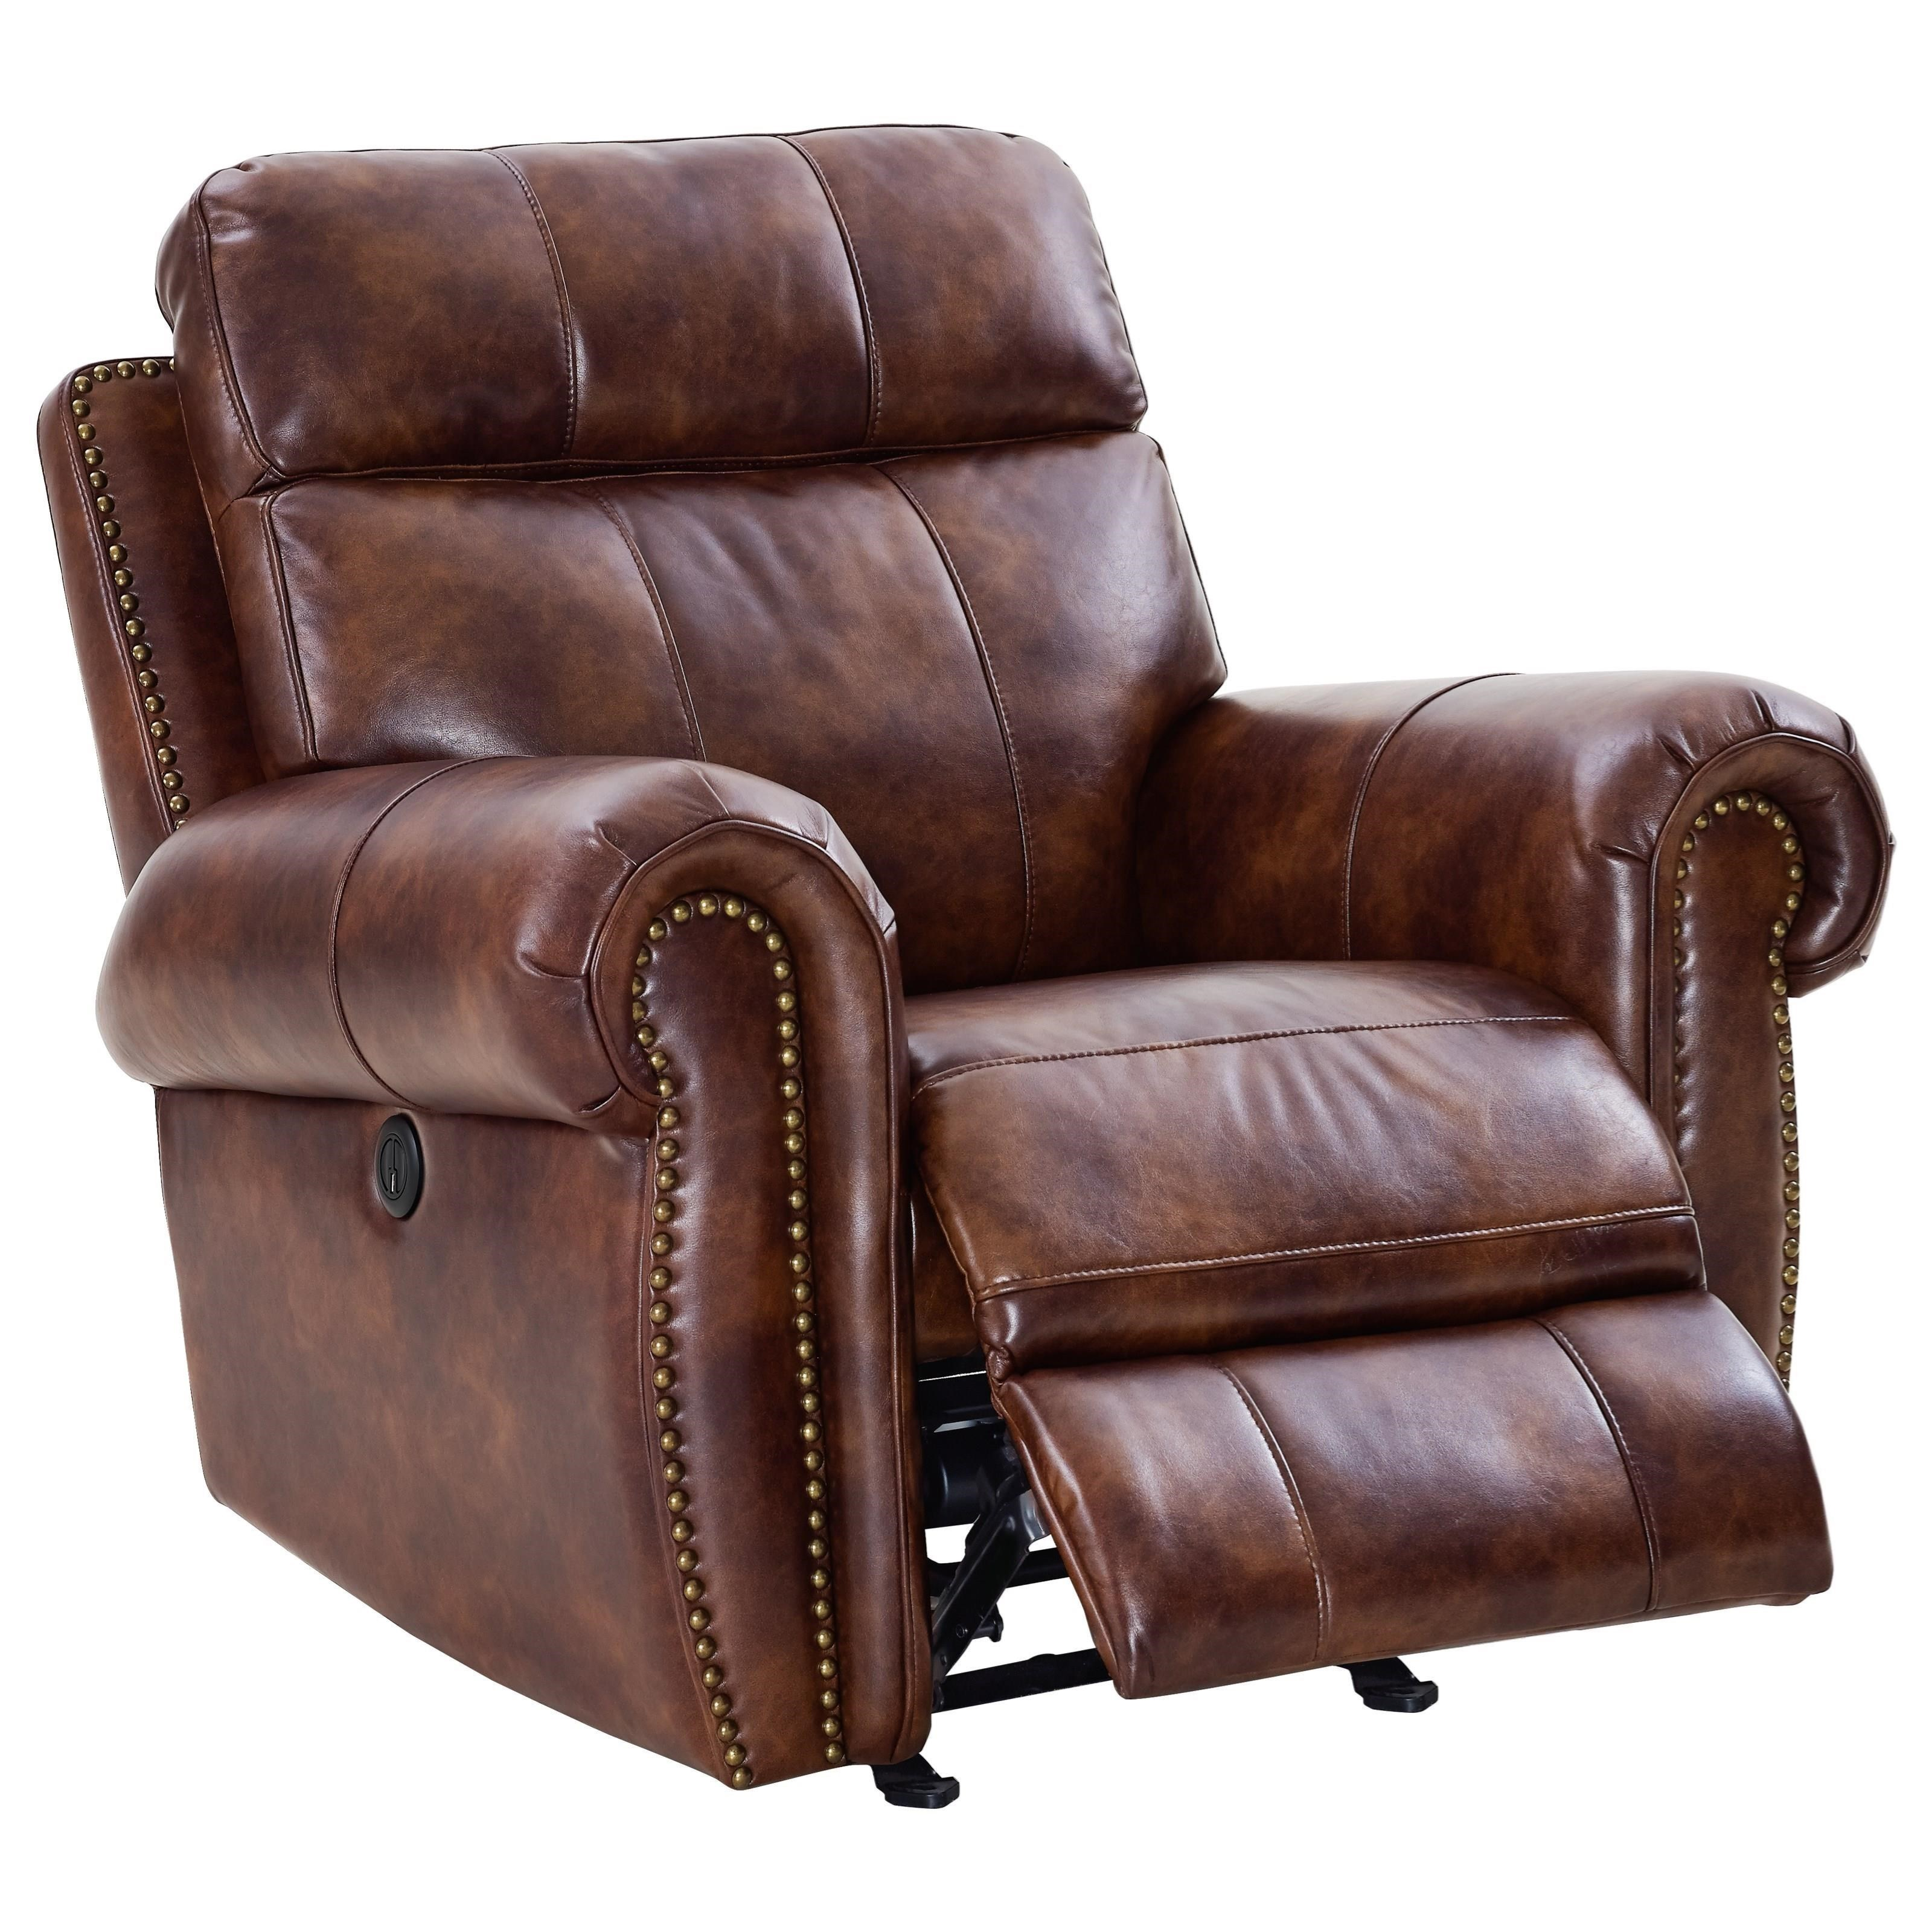 Roycroft Glider Recliner by New Classic at H.L. Stephens